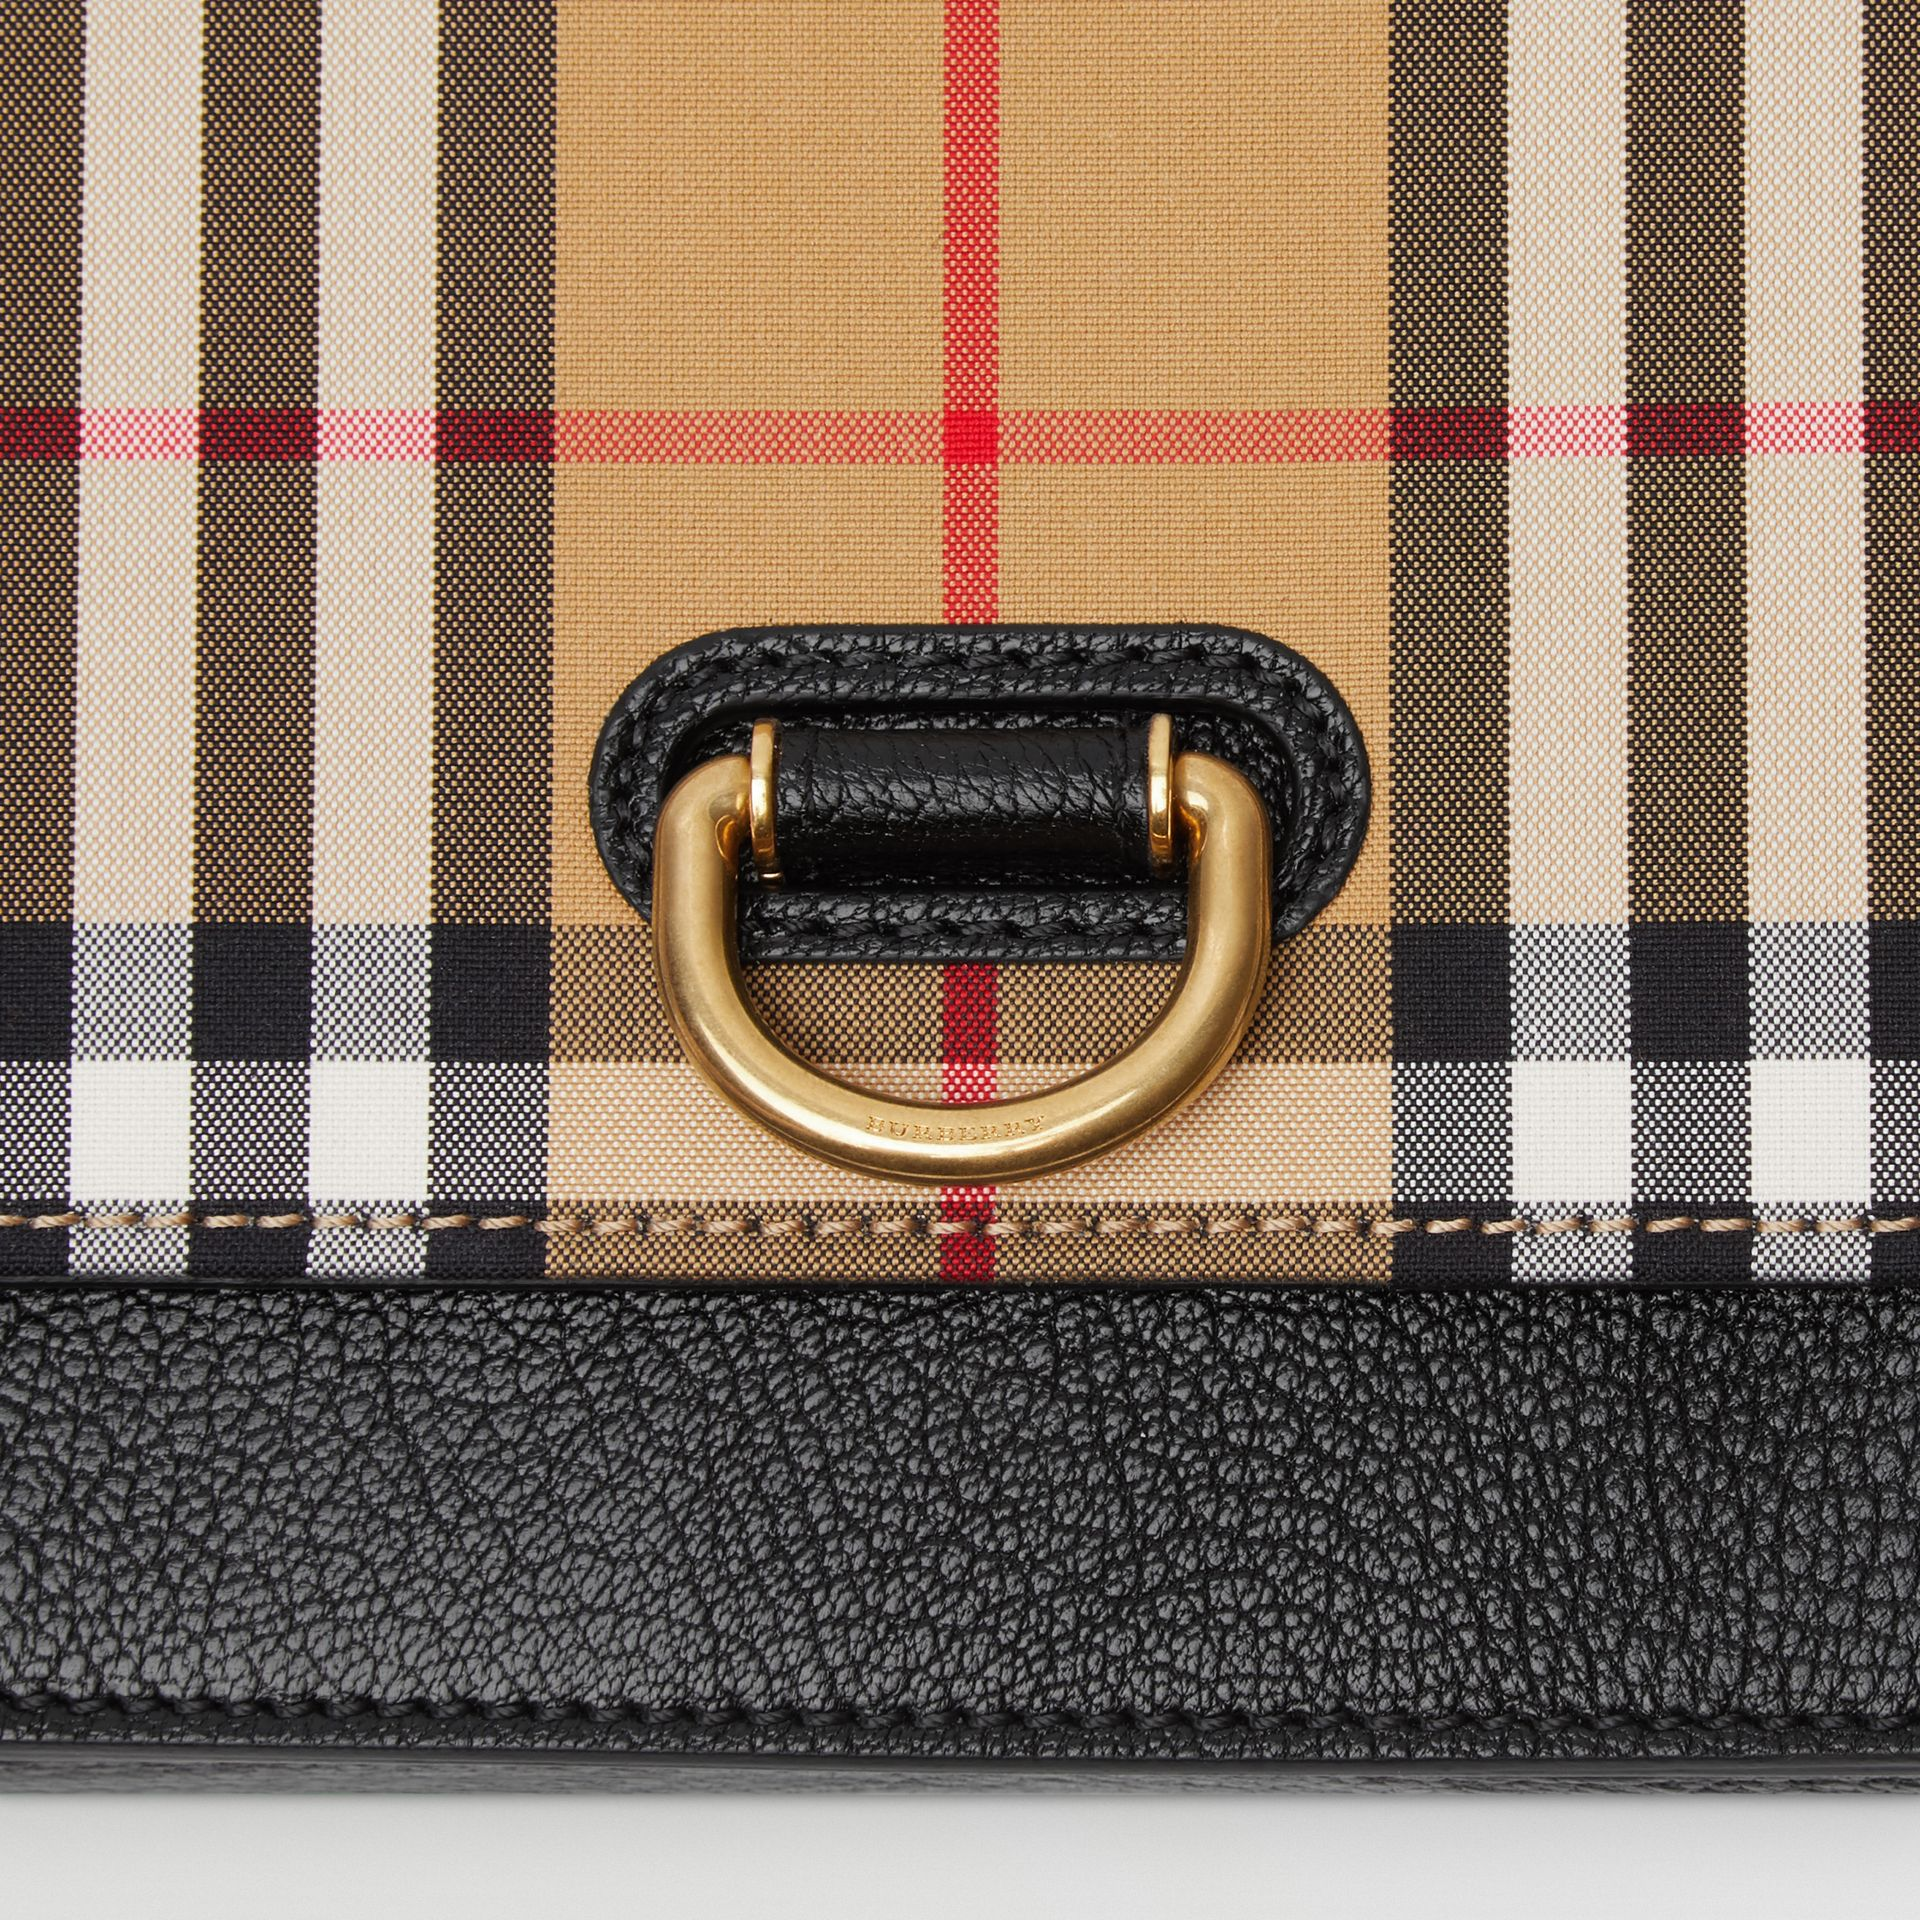 Borsa The D-ring mini in pelle con motivo Vintage check (Nero) - Donna | Burberry - immagine della galleria 1